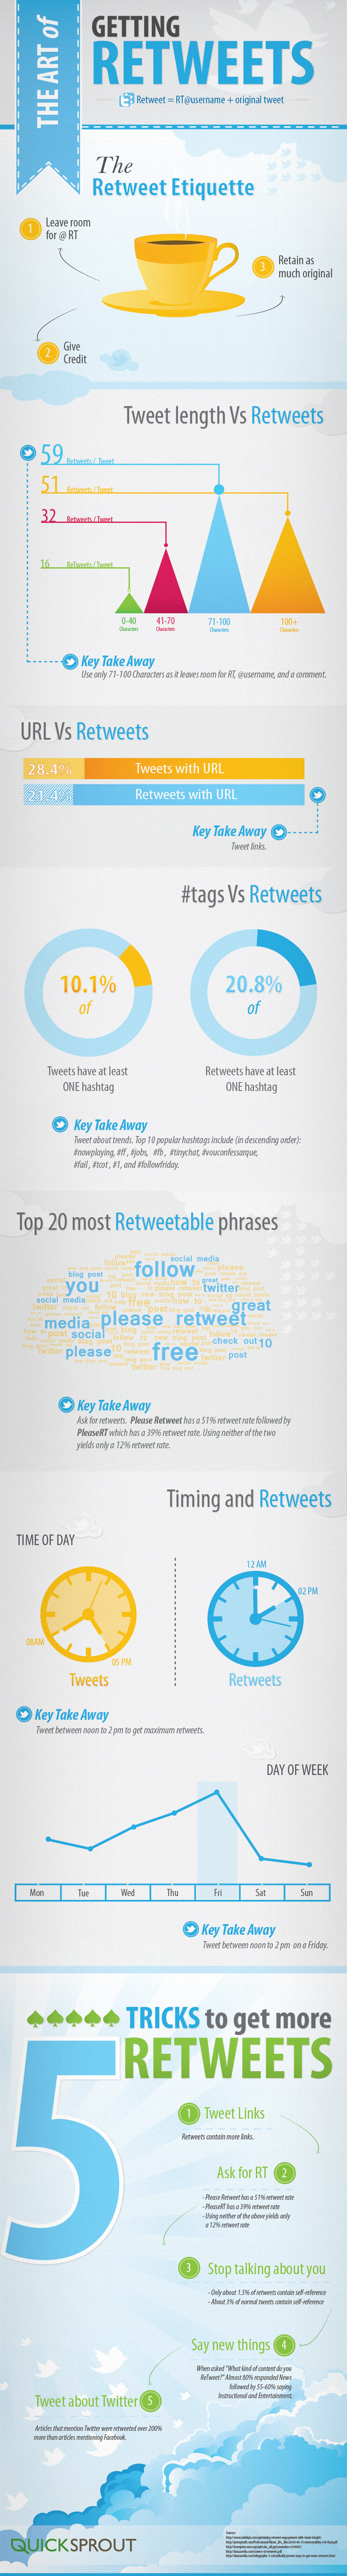 the-art-of-getting-retweets